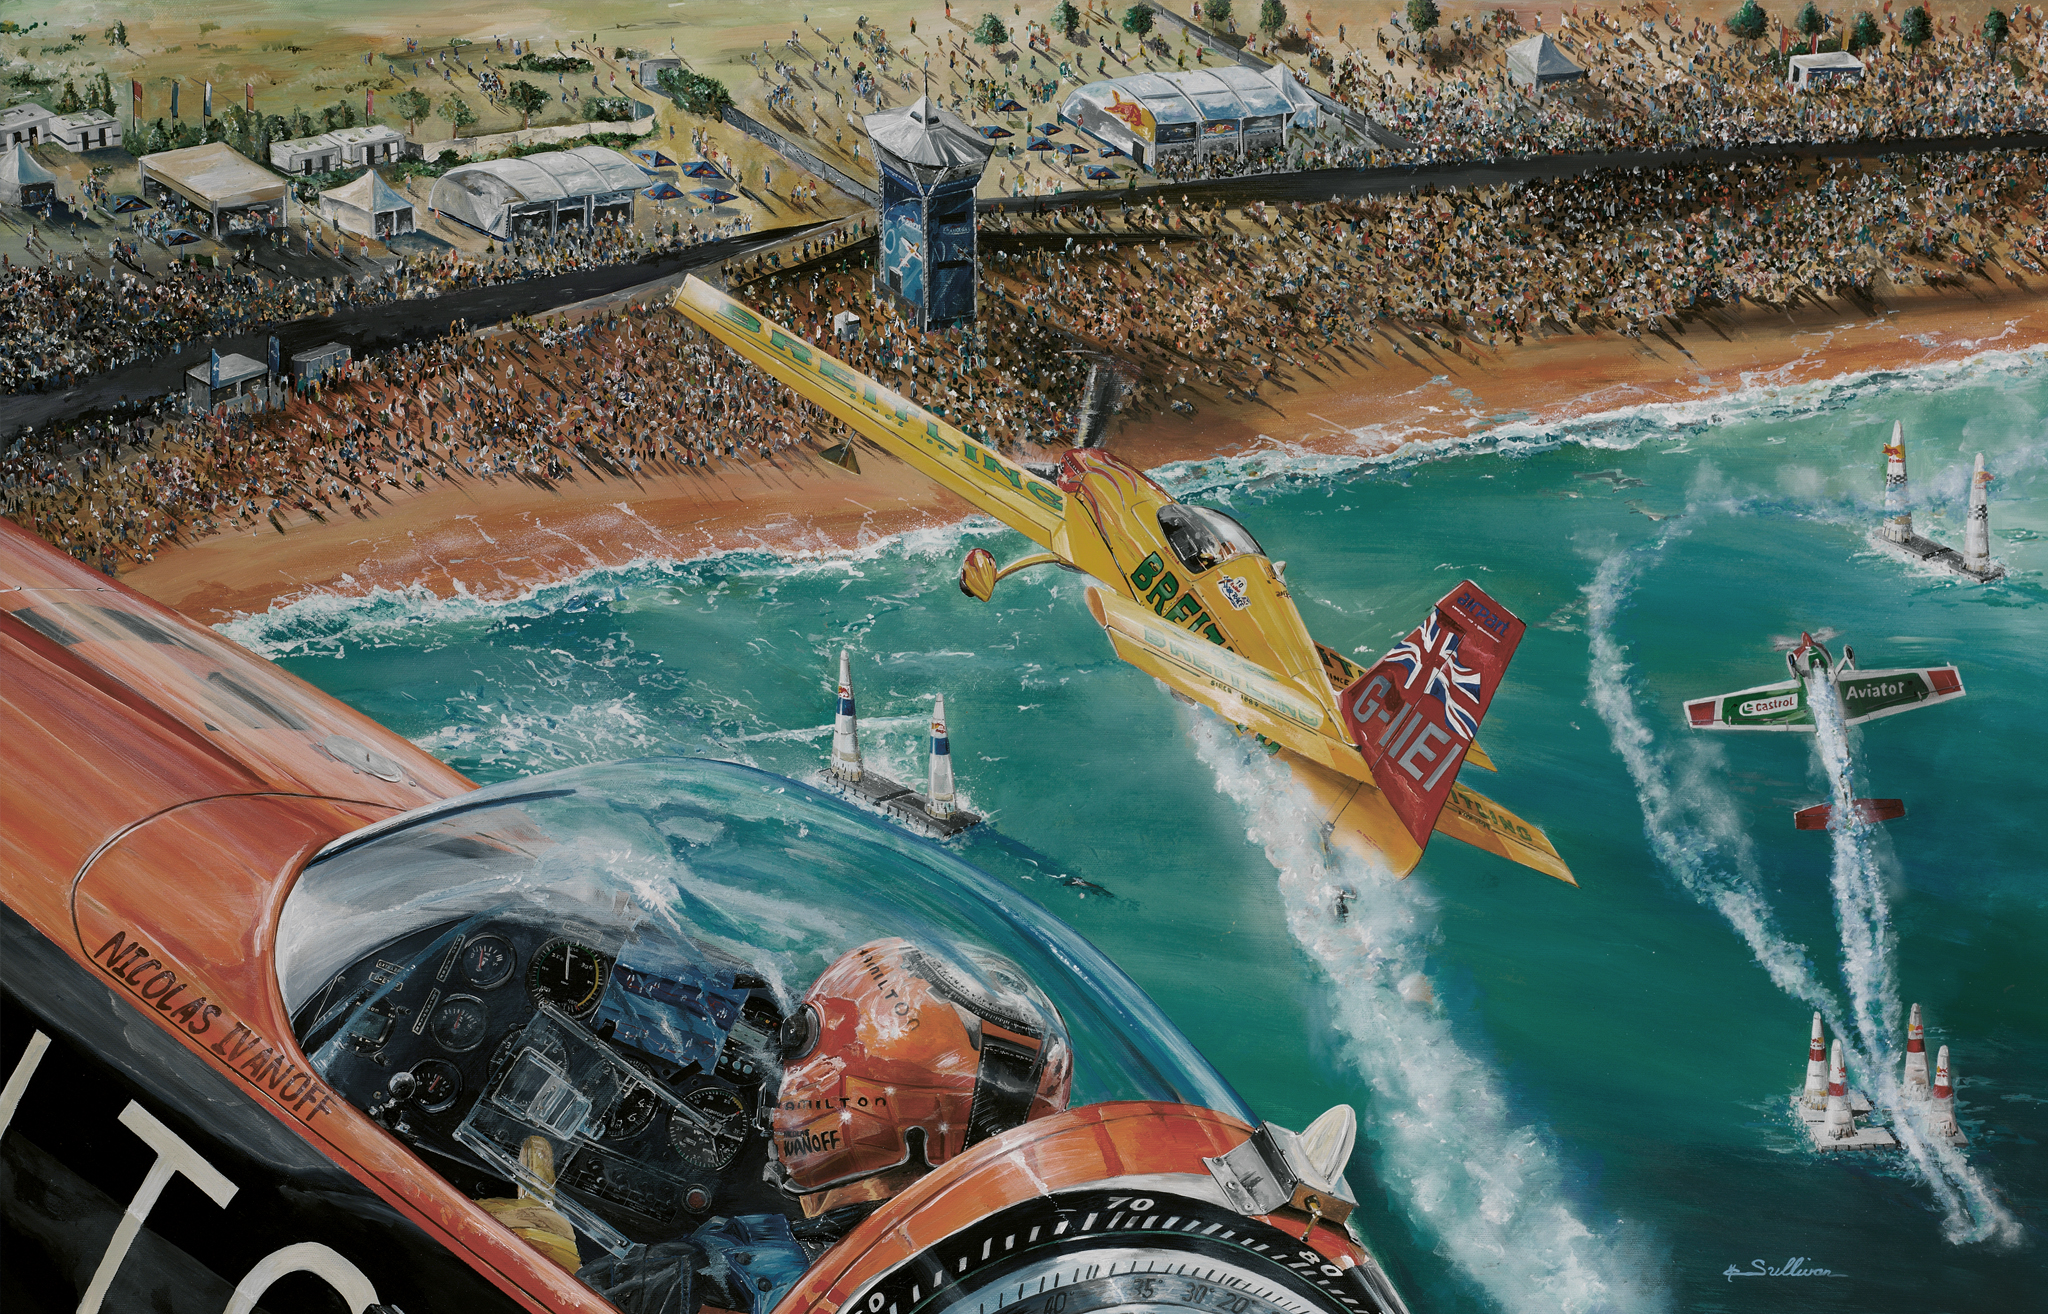 Sullivan_RedBullAirRace_Event_Art